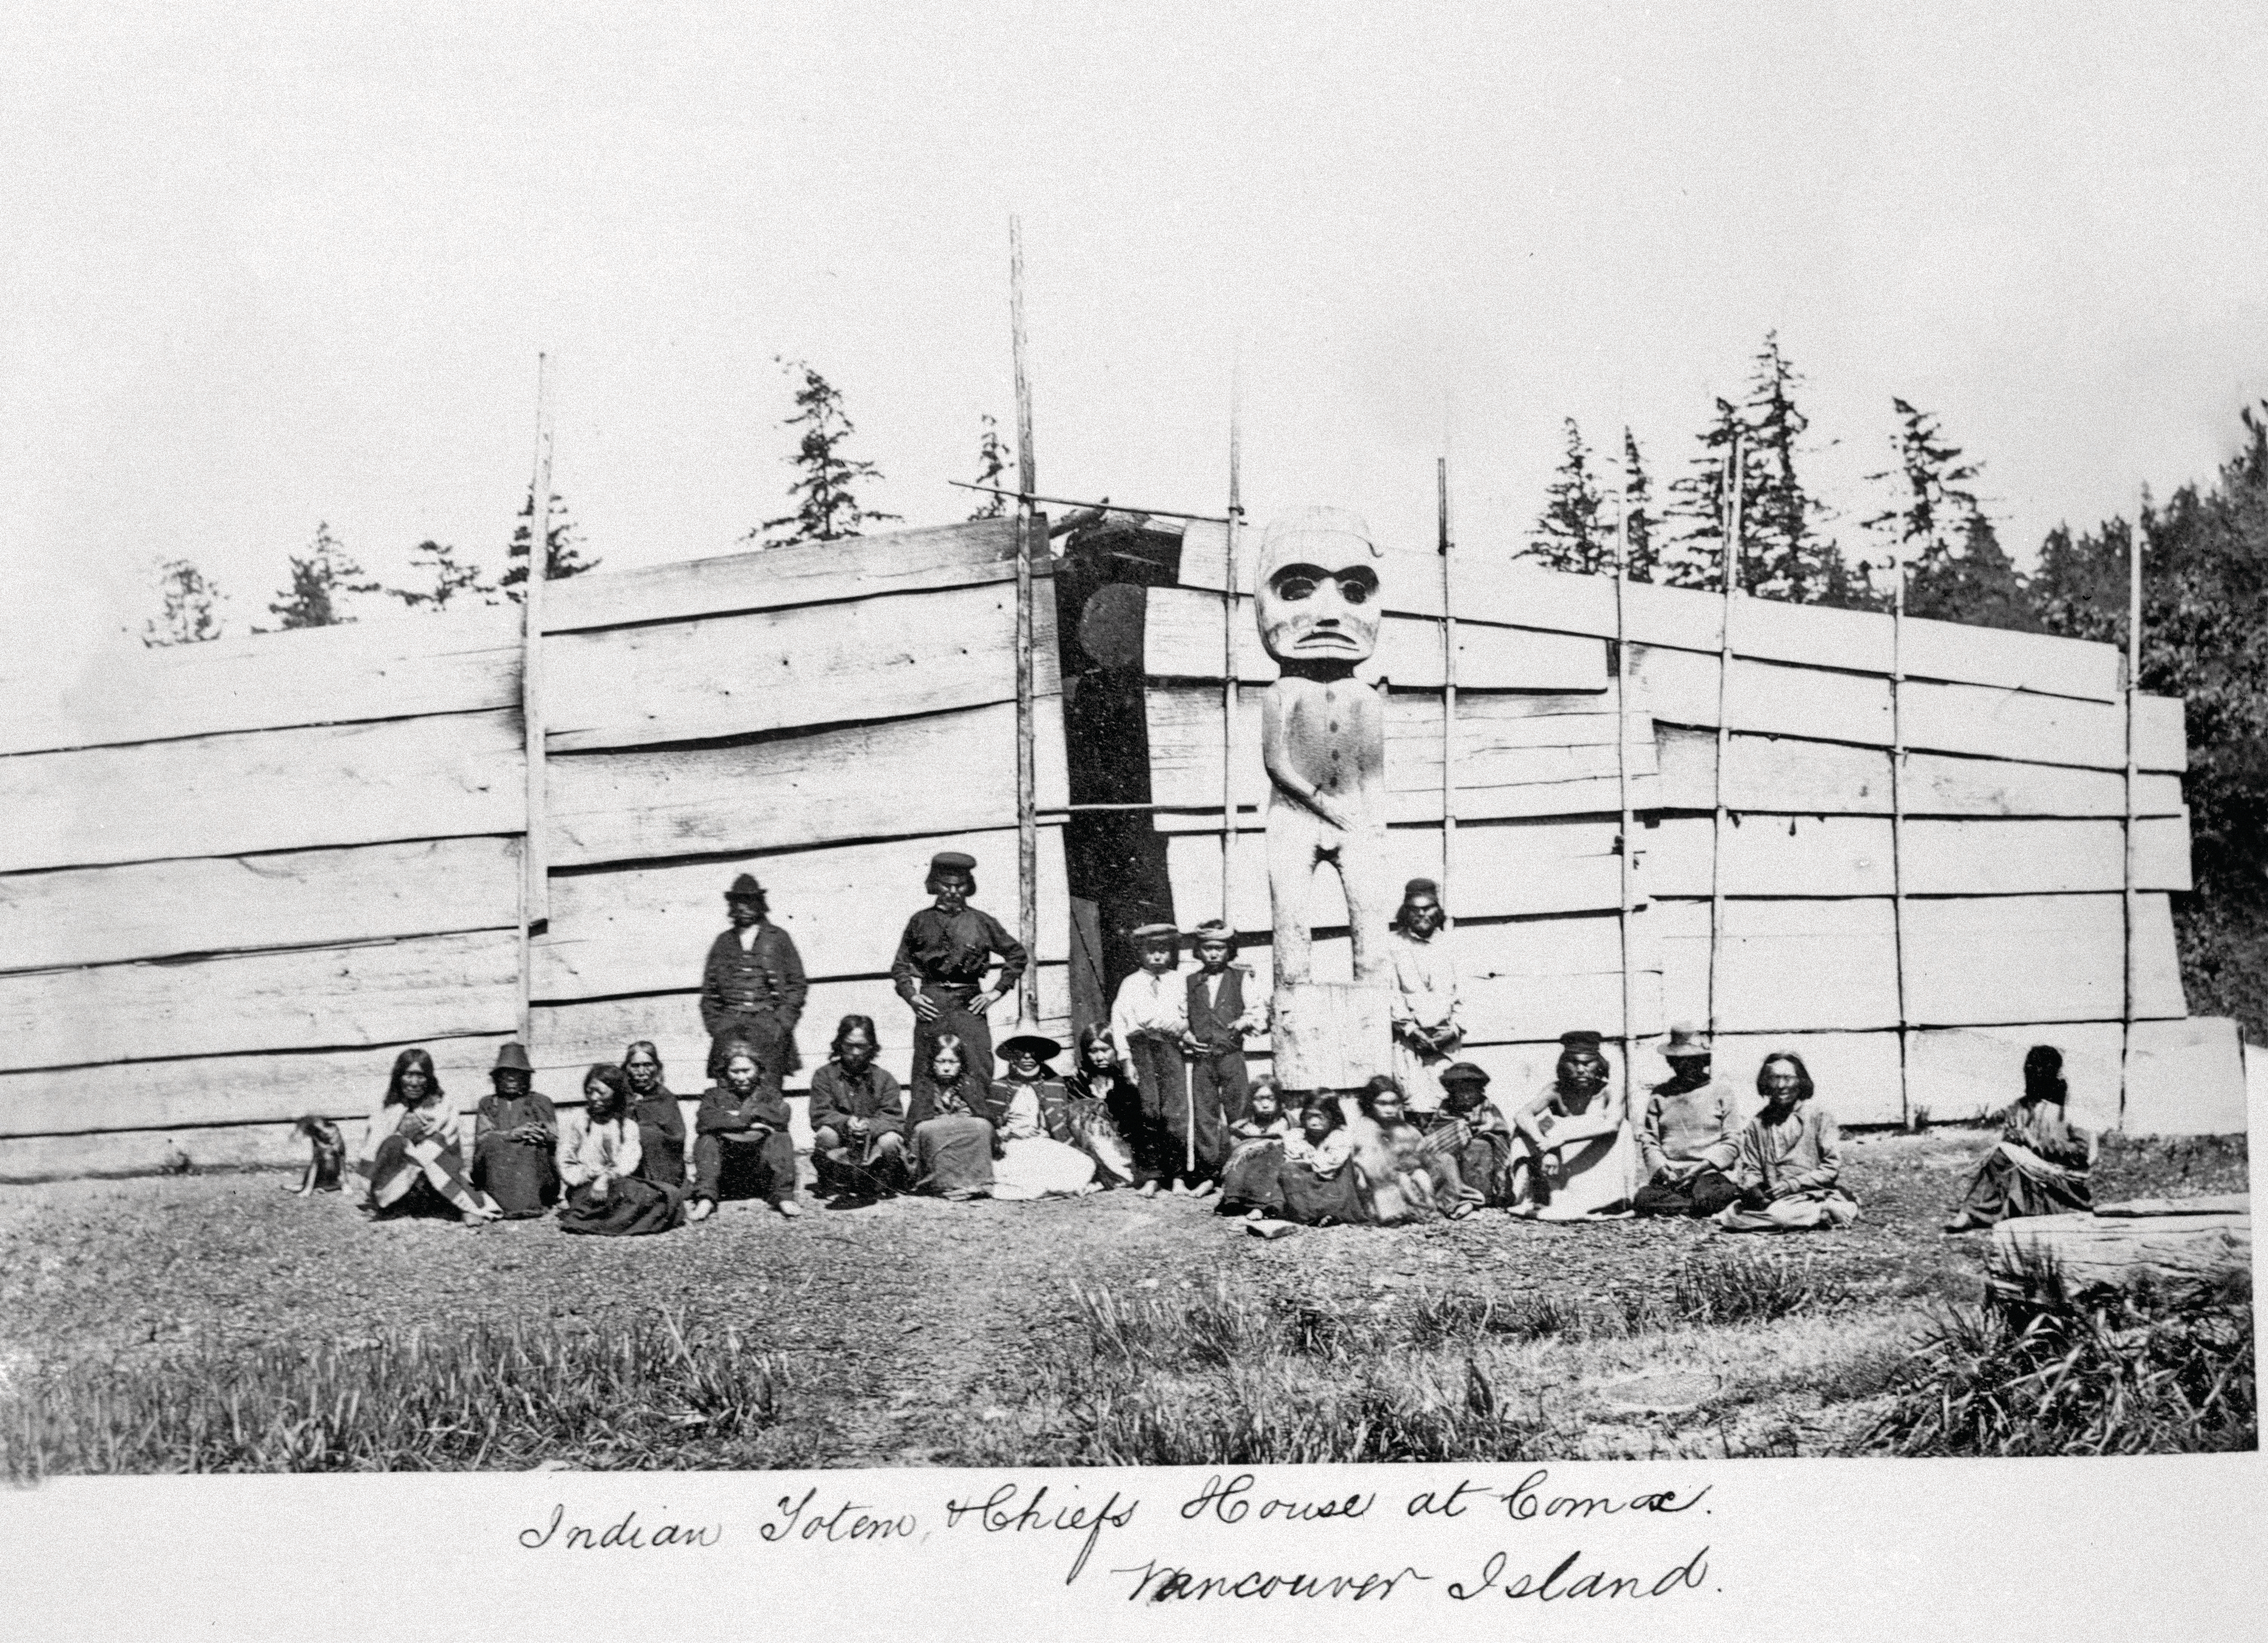 A photo taken outside a chief's house in the Comox area sometime between 1866 and 1870 (Image C-09265 courtesy of the Royal BC Museum)